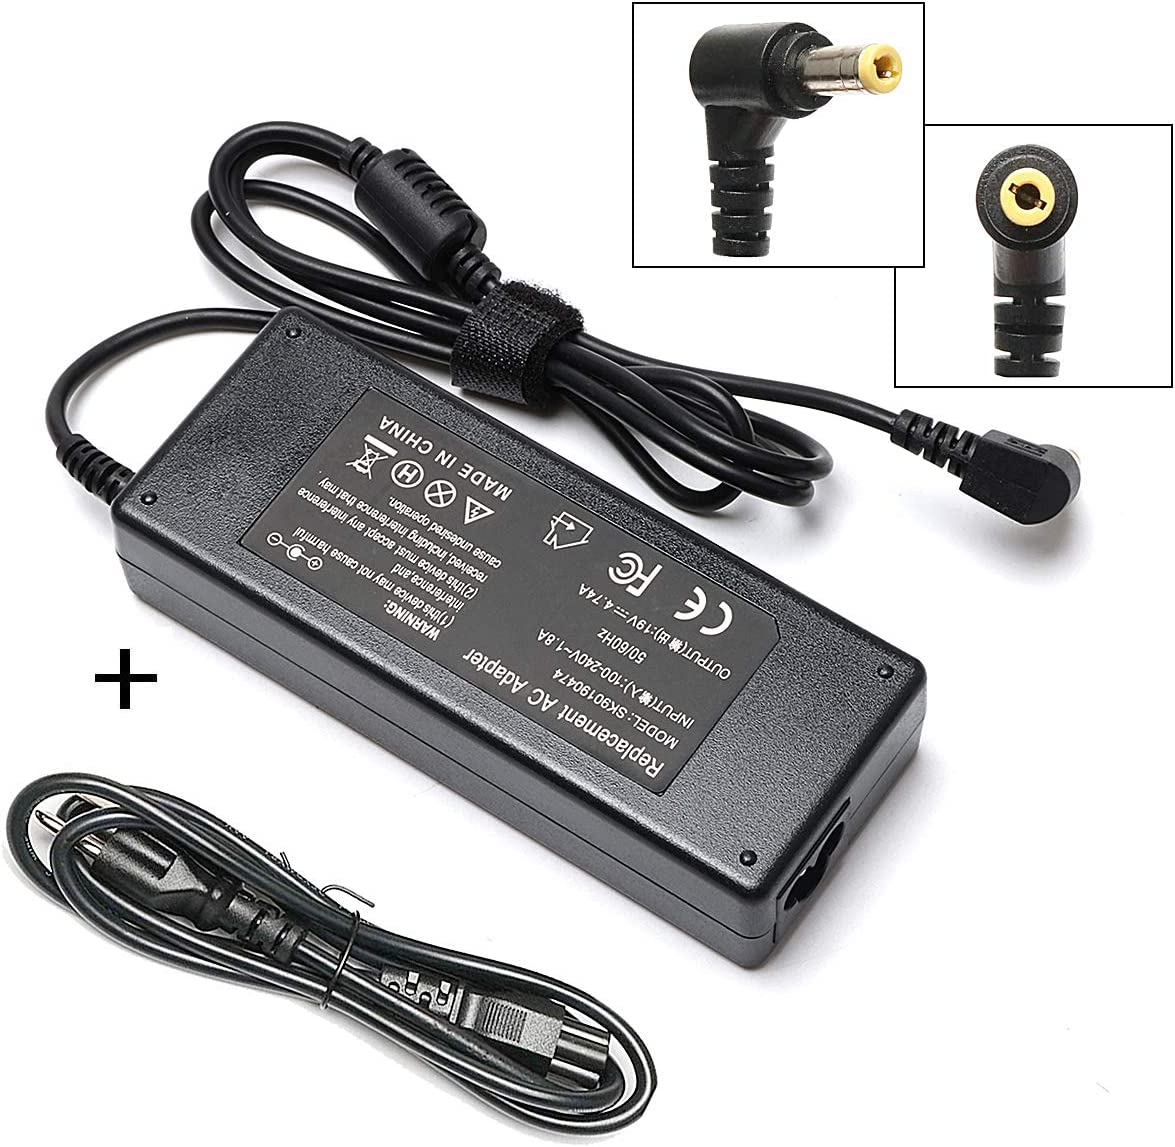 90W Laptop Charger Compatible for Toshiba Satellite C655 C675 C675D L645 L645D L655 L655D L675 L675D L745 L755 L755D P745 P755 P775 M645 Series AC Adapter Power Supply Cord PA3714U-1ACA PA5177U-1ACA